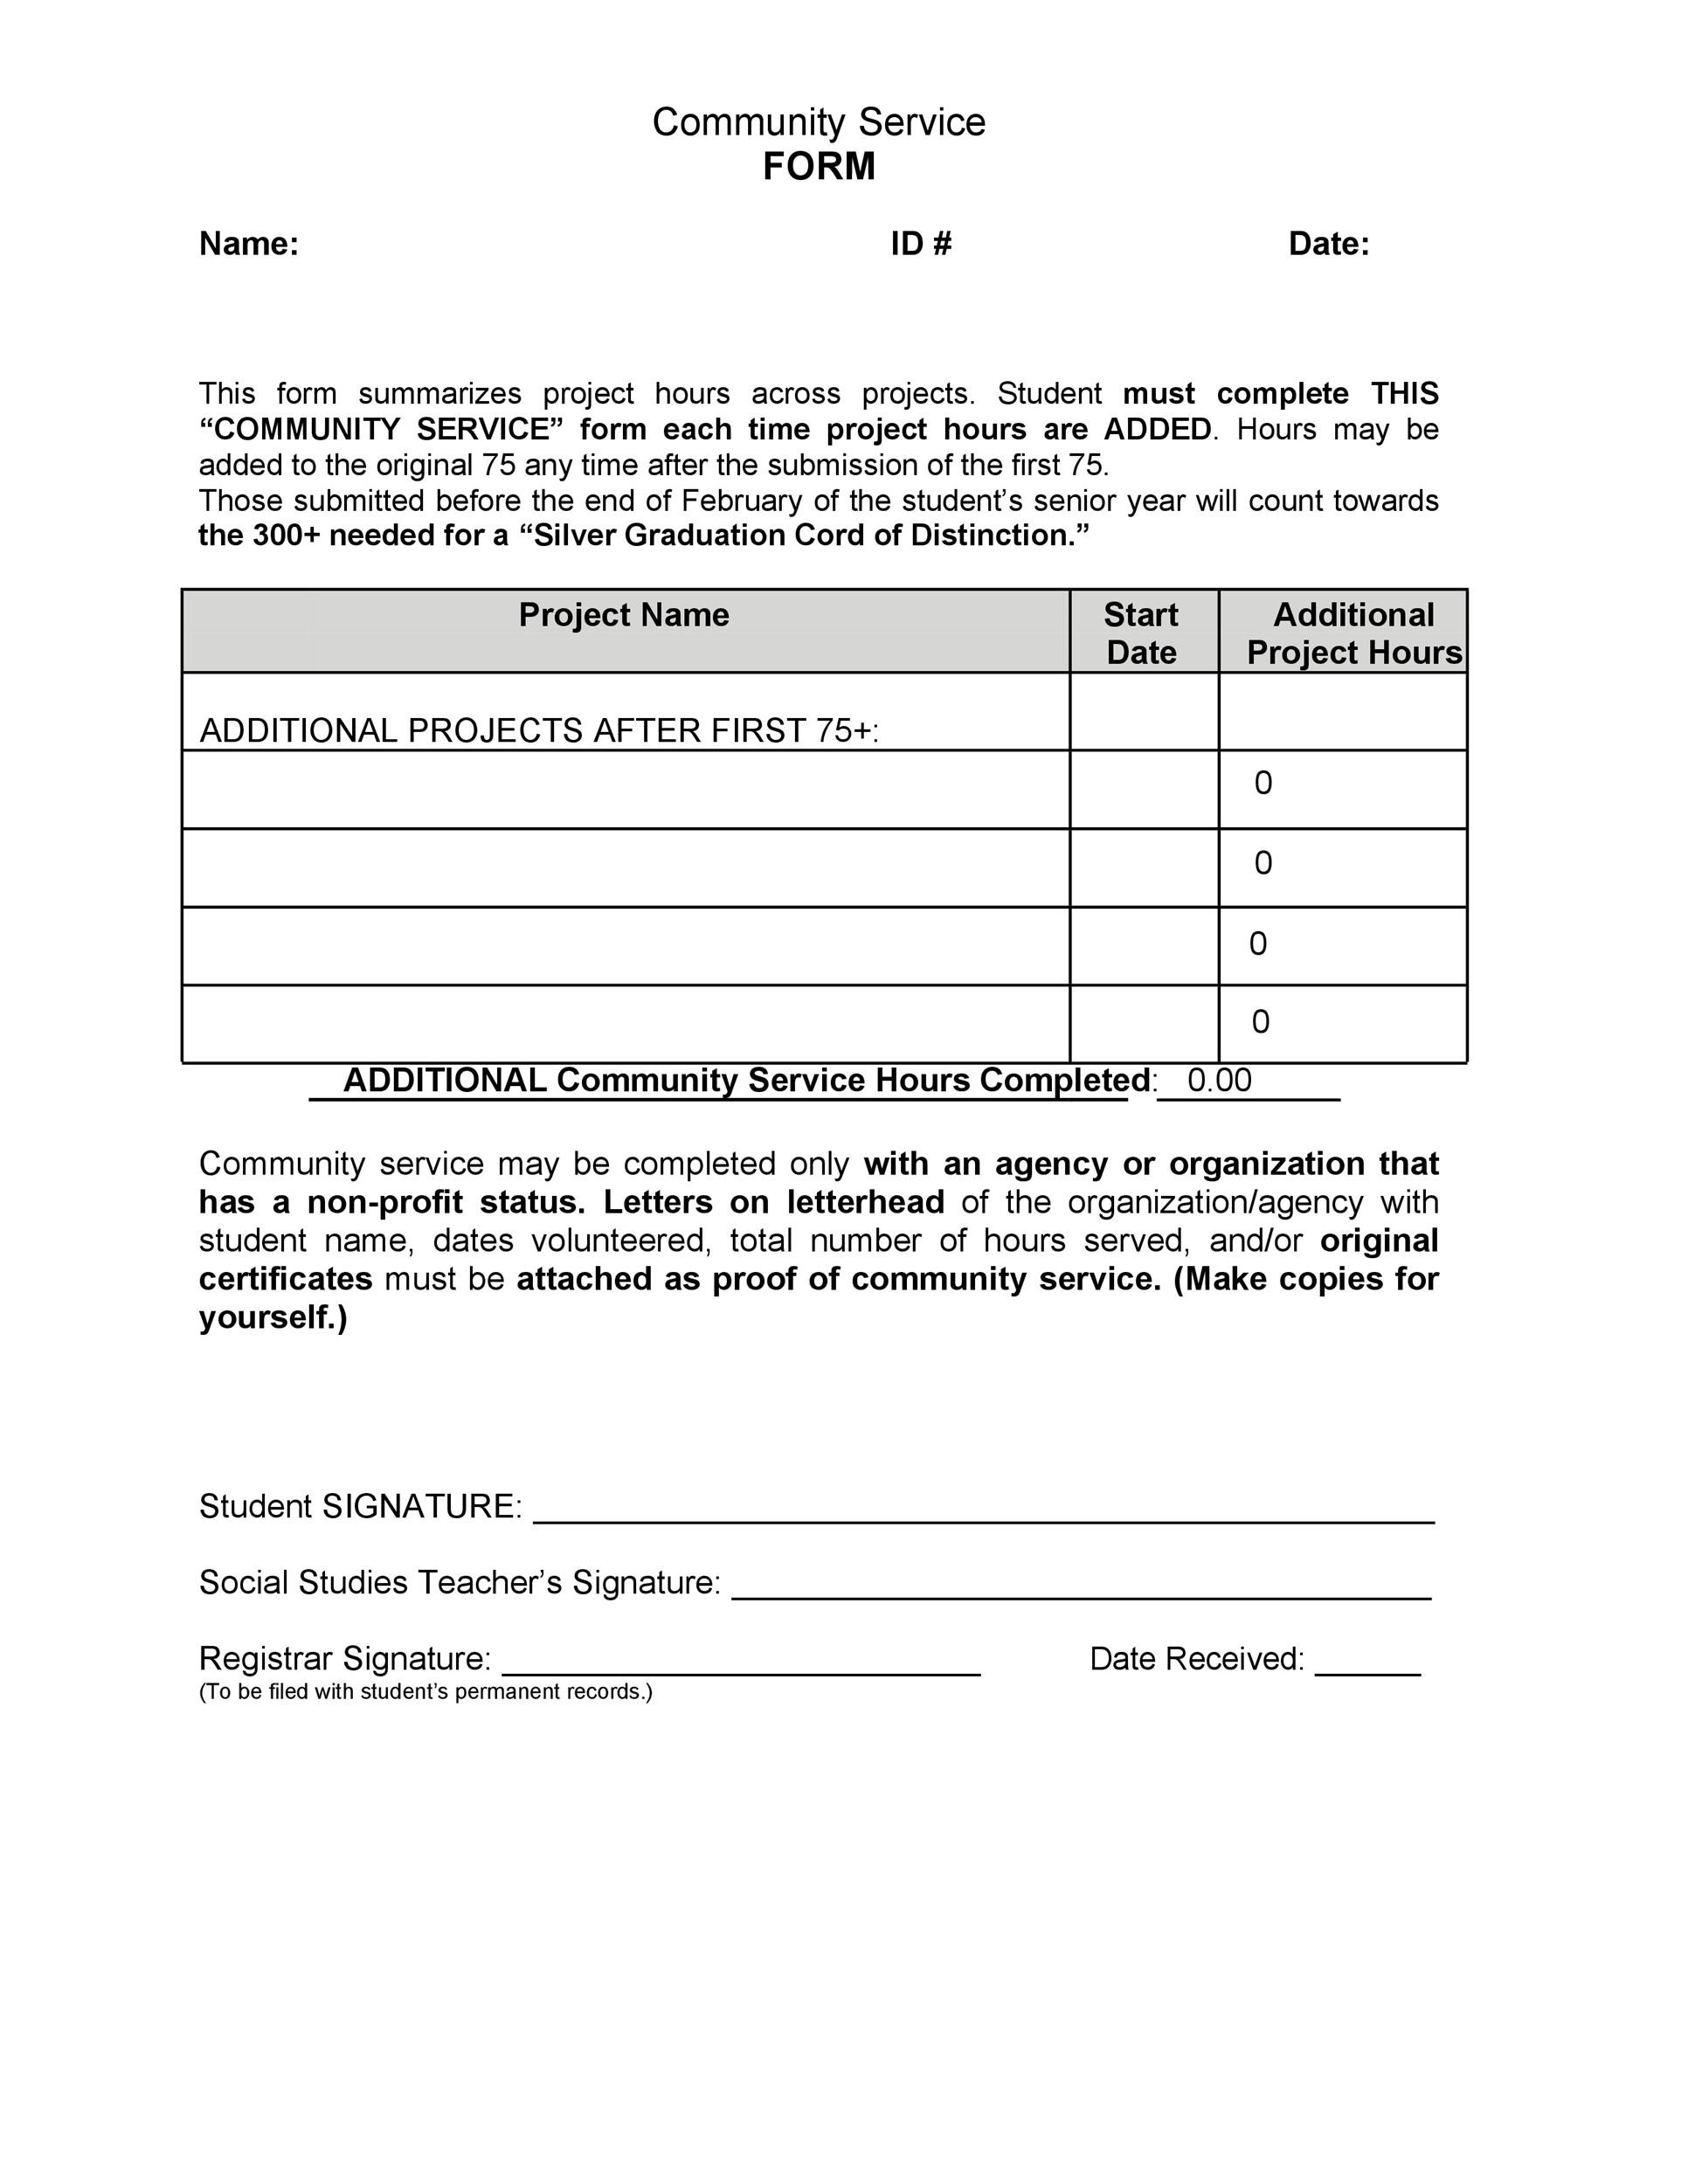 community-service-letter-template-28 Volunteer Hours Completion Letter Template on proof of volunteer hours template, volunteer request letter template, volunteer for community service letter, volunteer service hours letter, volunteer letters of the month, community service hours template, volunteer hours certificate templates, student volunteer hours template, volunteer letter for nurse, volunteer hours log, volunteer invitation letter, volunteer recommendation letter template, volunteer hours form template, volunteer verification letter template, volunteer hours record sheet template, volunteer completion letter,